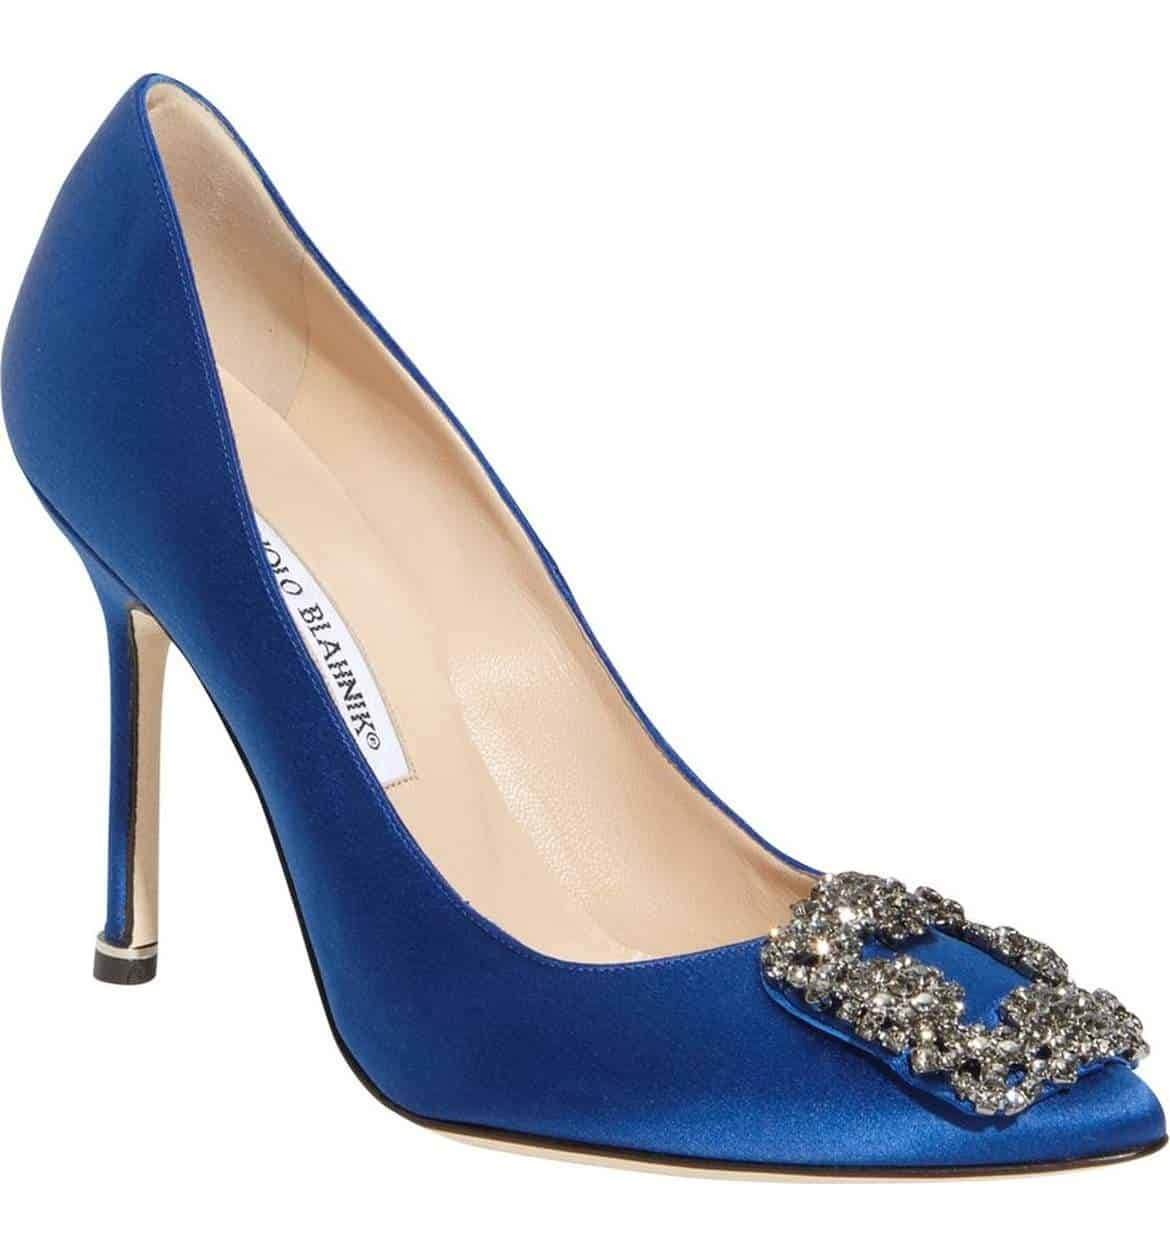 manolo blahnik wedding shoes stylin on your big day